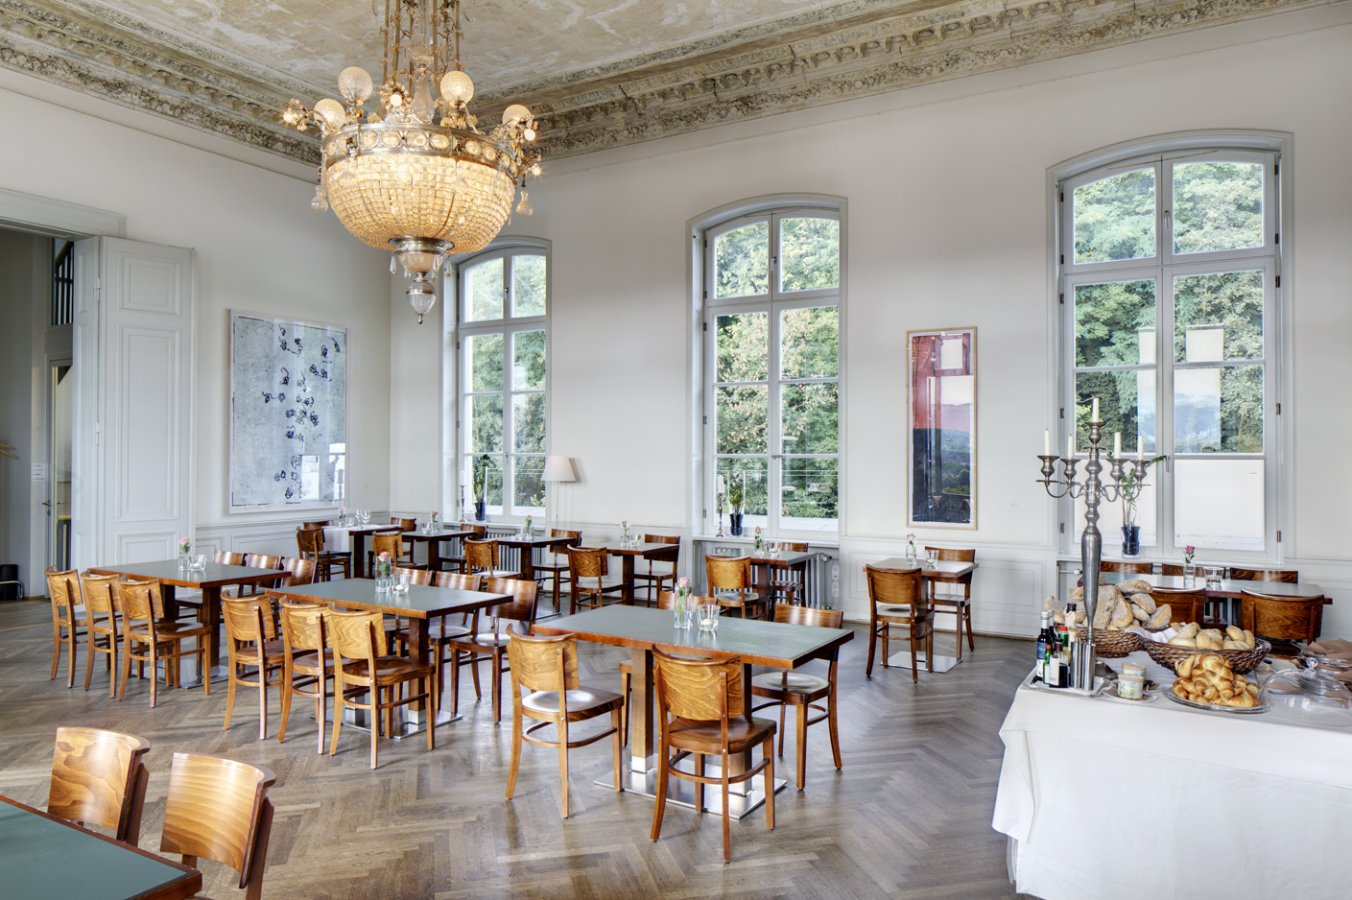 The restaurant Bistro Interieur 253 in the historic banqueting hall © Photo: Mick Vincenz